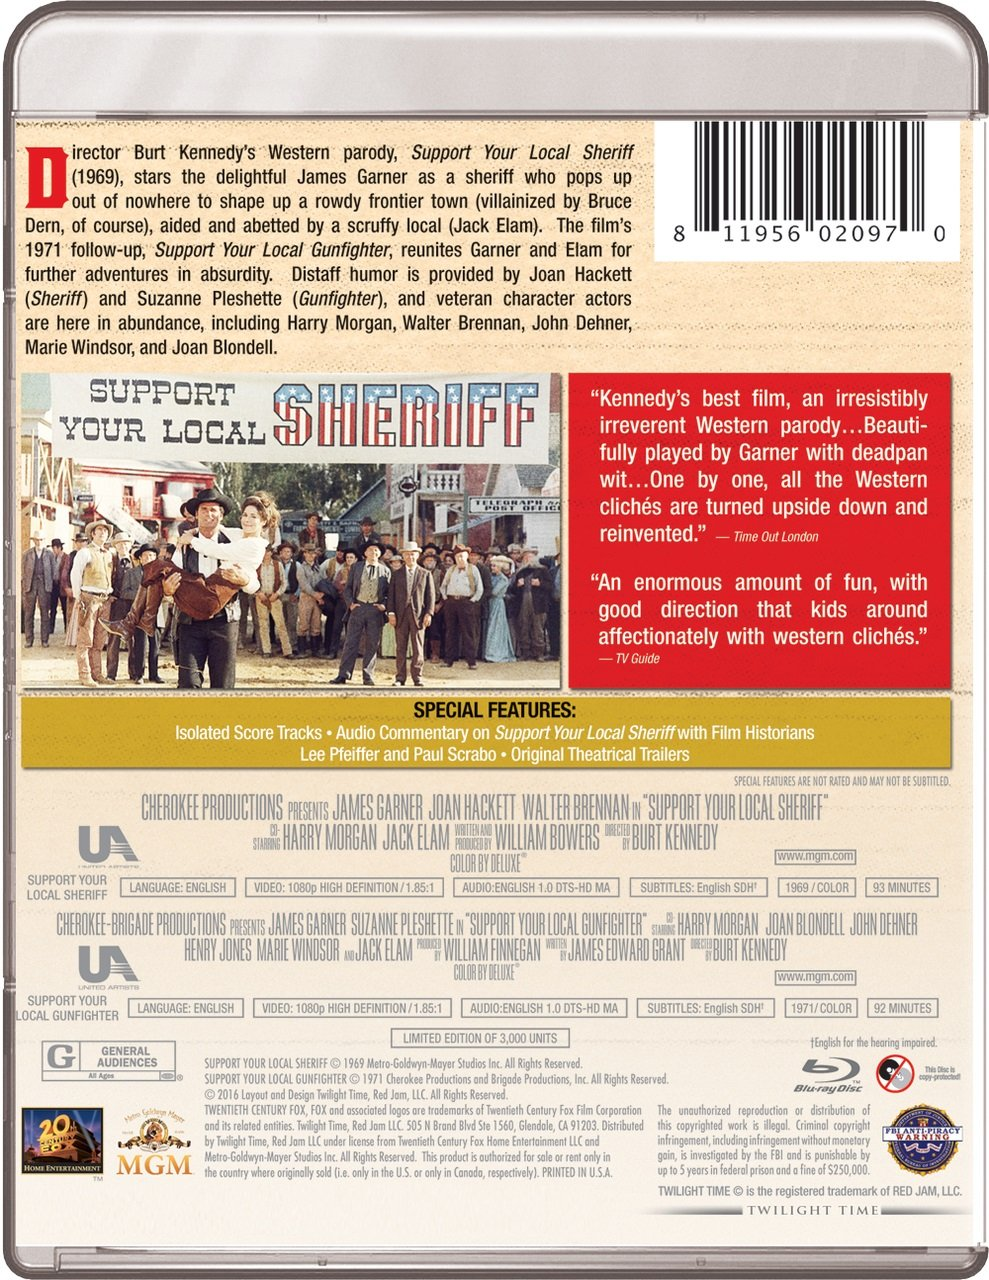 amazon com support your local sheriff [1969] support your localamazon com support your local sheriff [1969] support your local gunfighter [1971] twilight time [blu ray] james garner, burt kennedy movies \u0026 tv